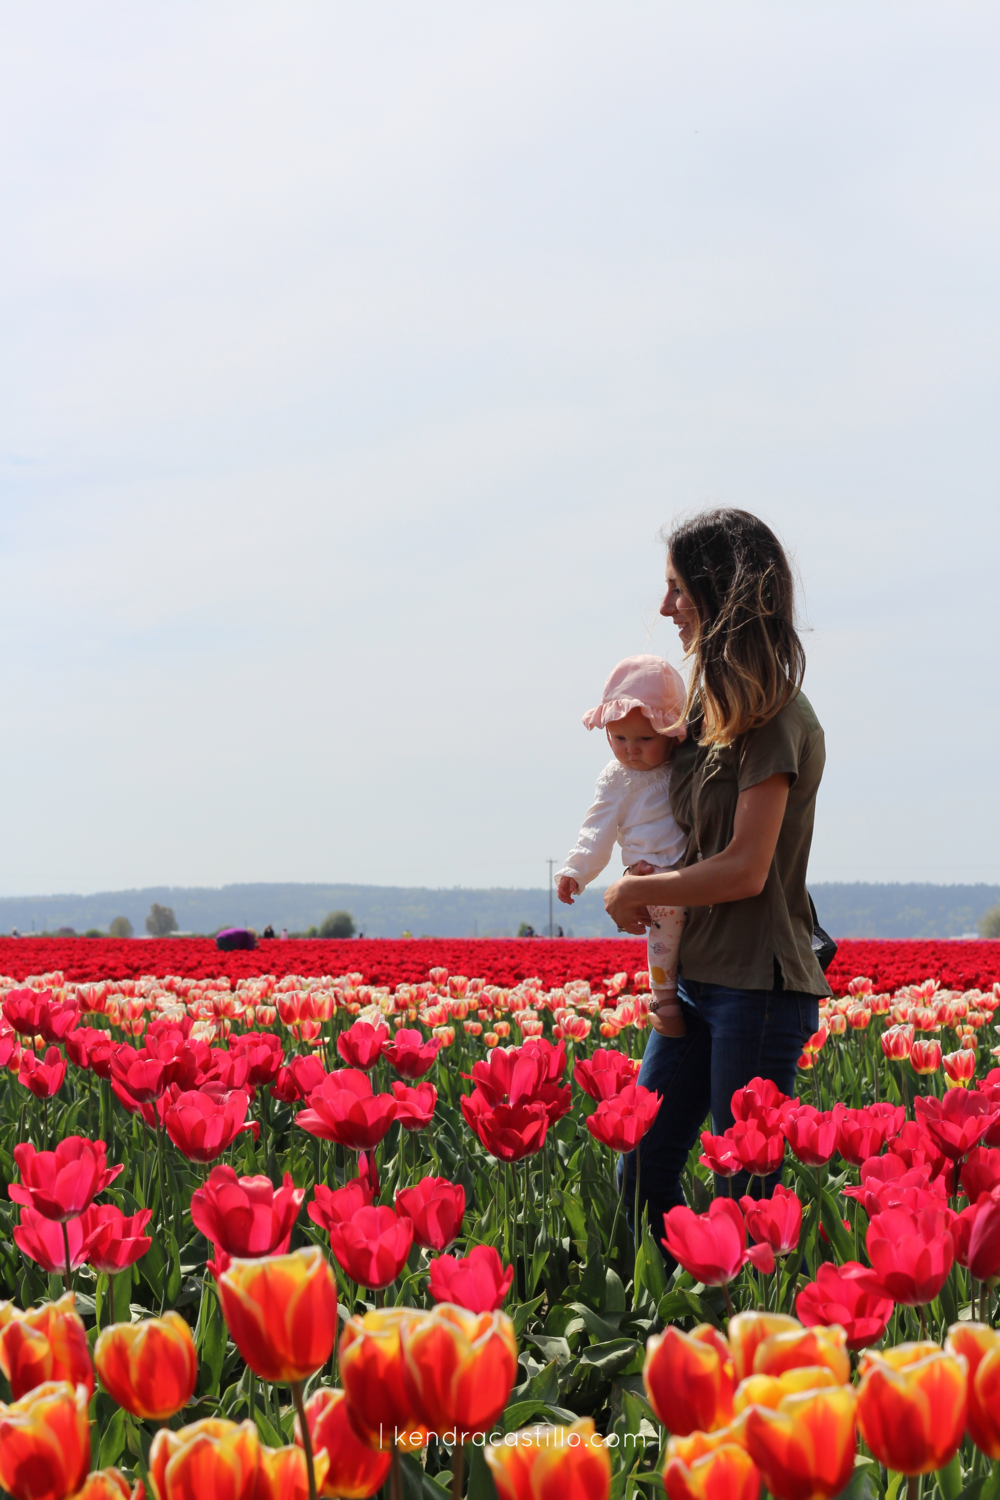 Visiting The Tulip Fields in Mount Vernon Washinton - Kendra Castillo